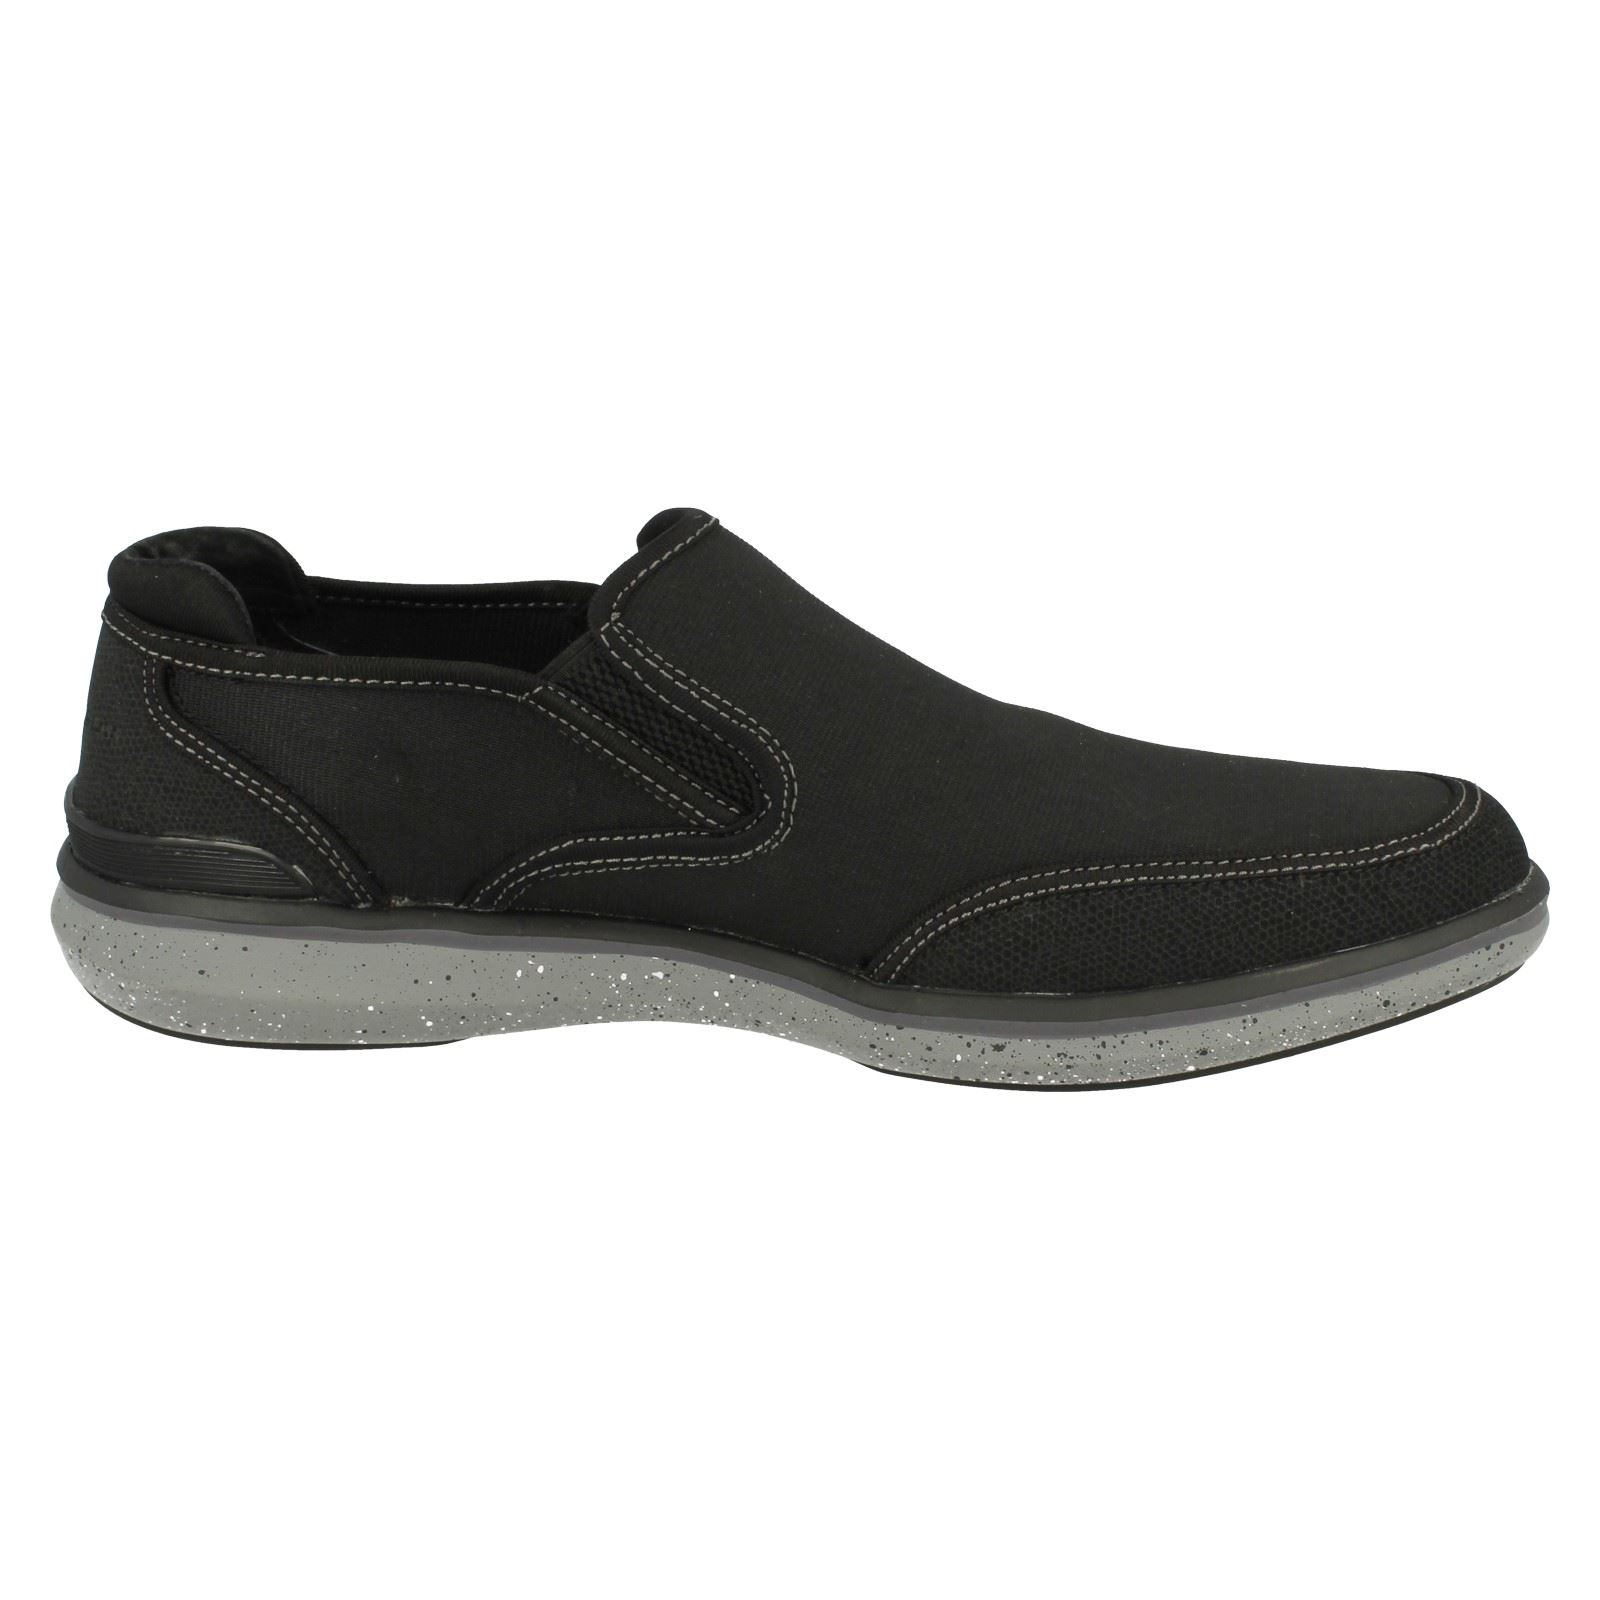 Uomo Mark Nason for 68130 Skechers Casual Pumps Helston 68130 for 2665e8